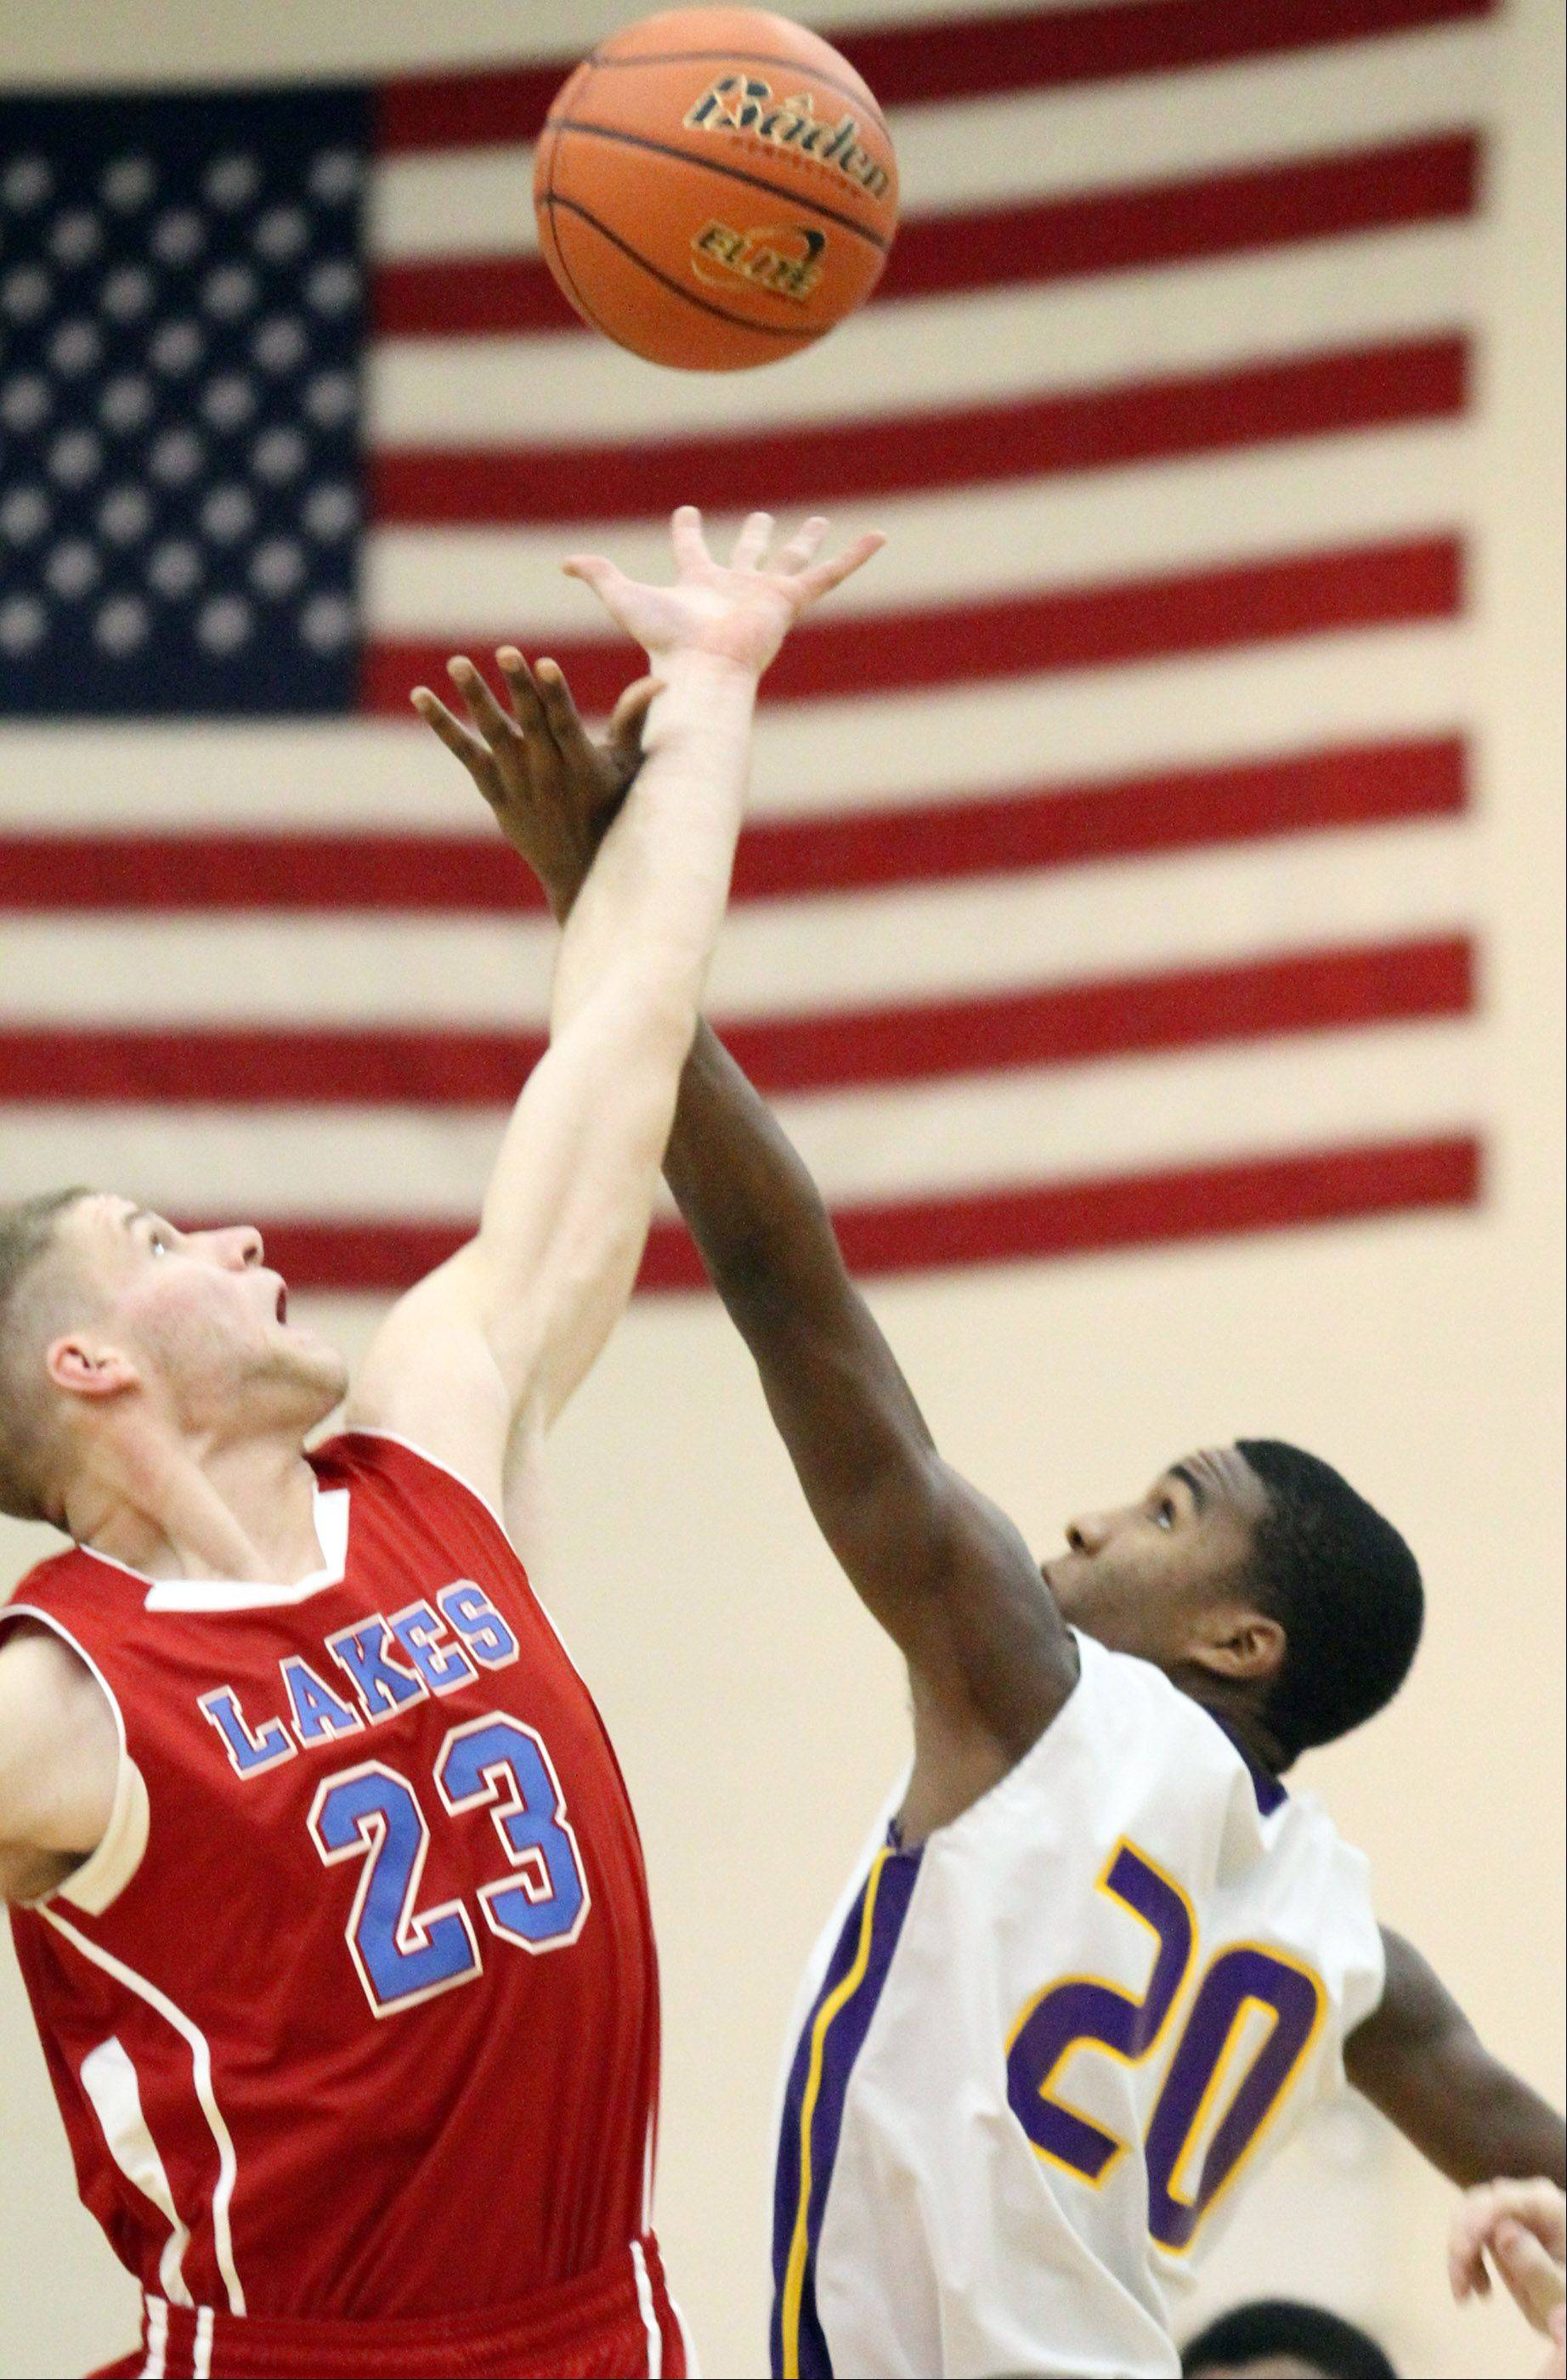 Lakes' Jake Kohler and Wauconda's Devon King tip off at Wauconda on Friday.